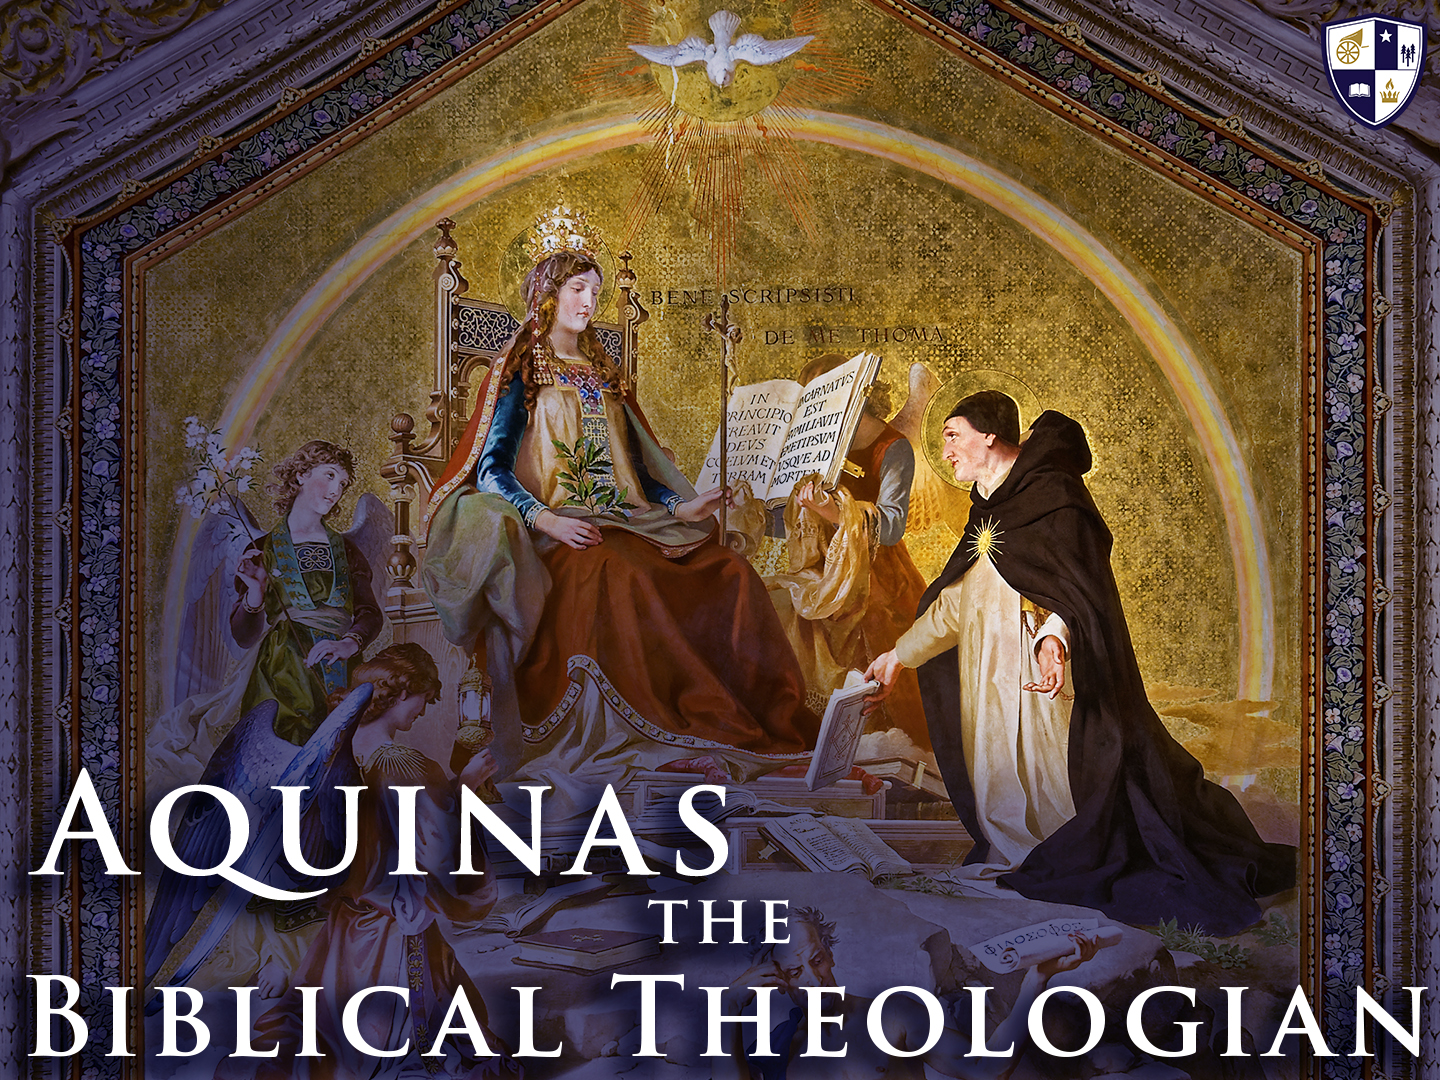 Aquinas the Biblical Theologian